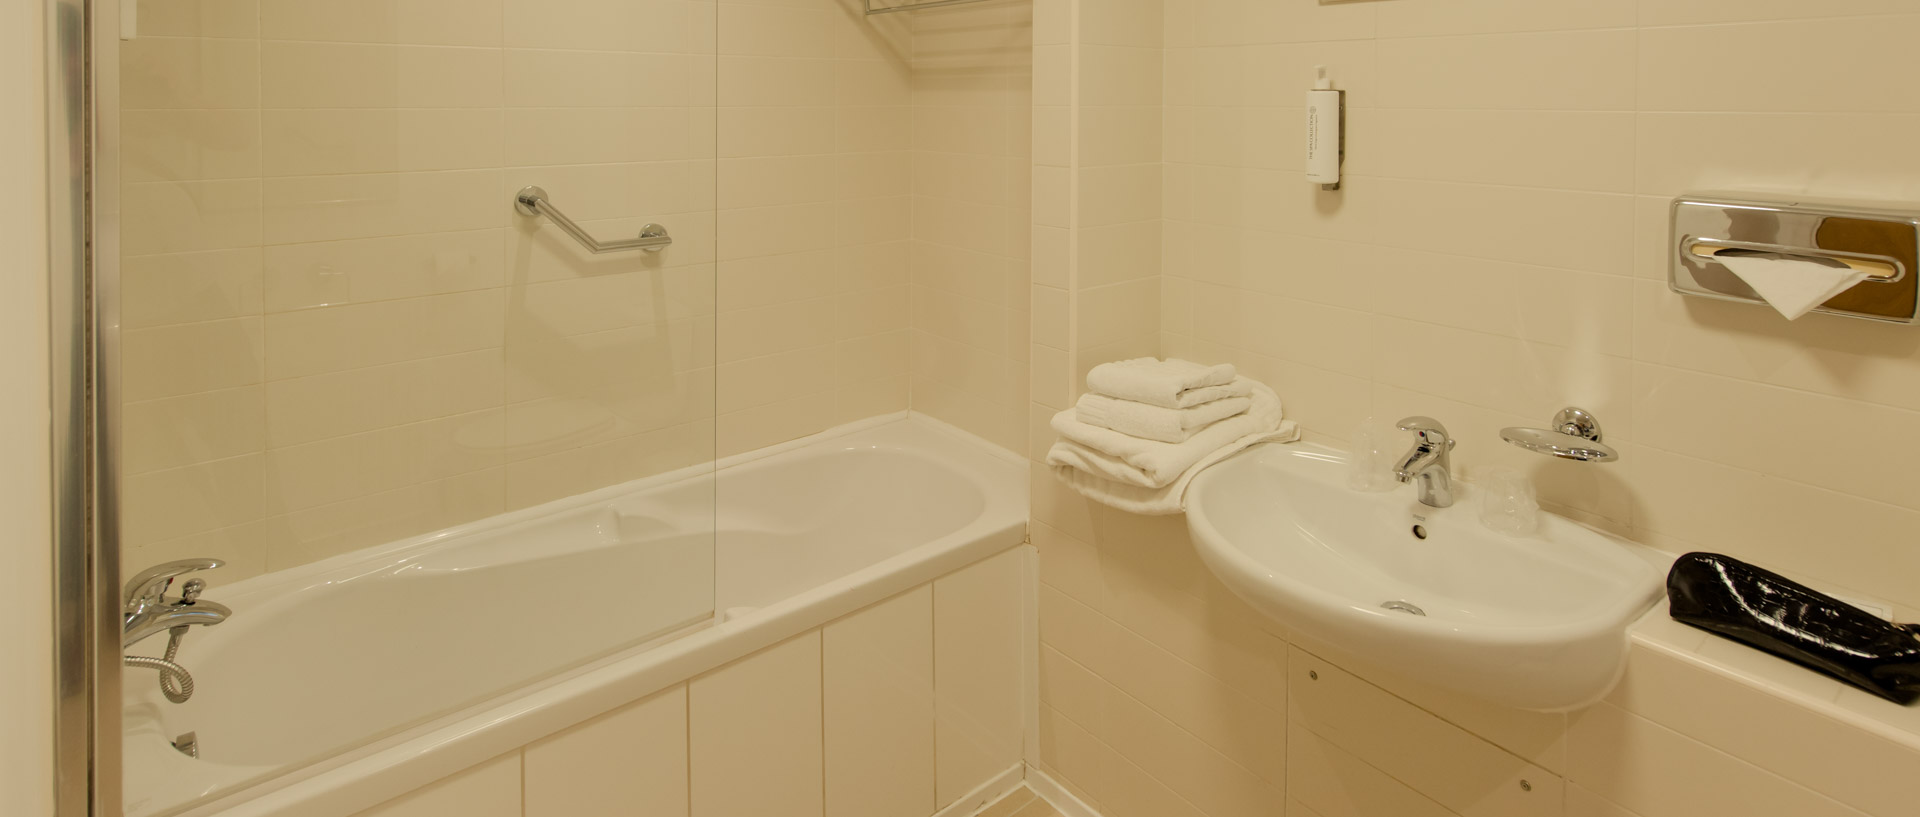 PREMIER SUITES Newcastle bright spacious bathroom